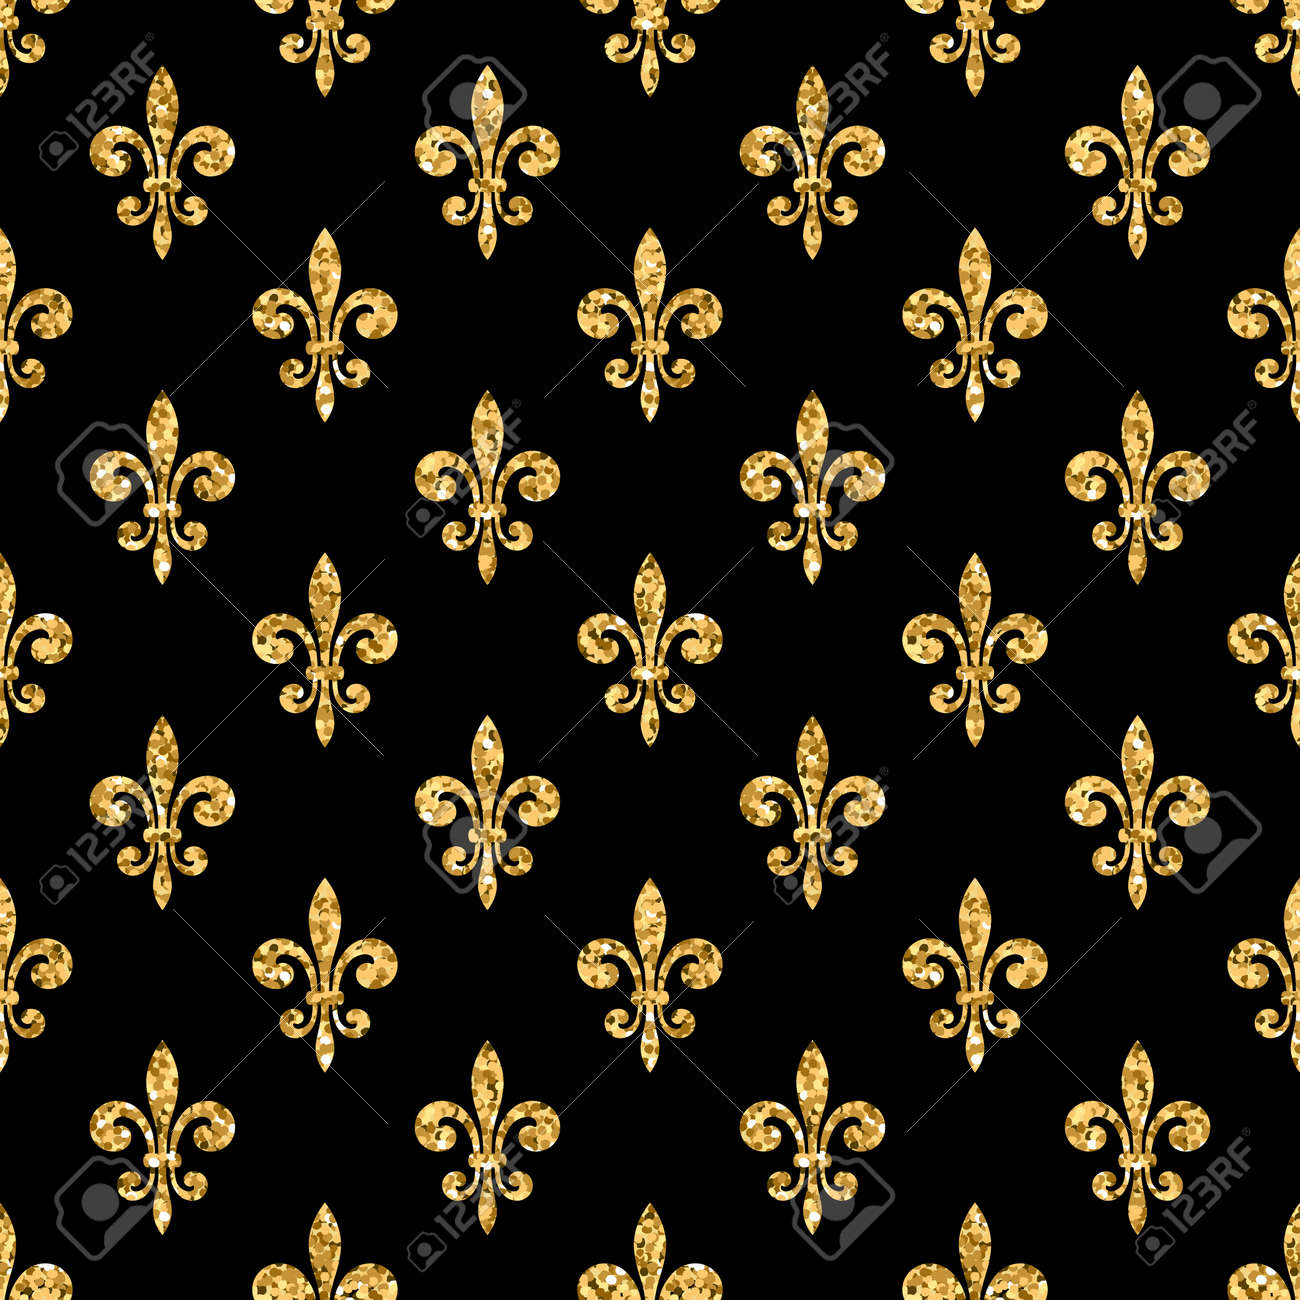 golden fleur de lis seamless pattern gold glitter and black stock